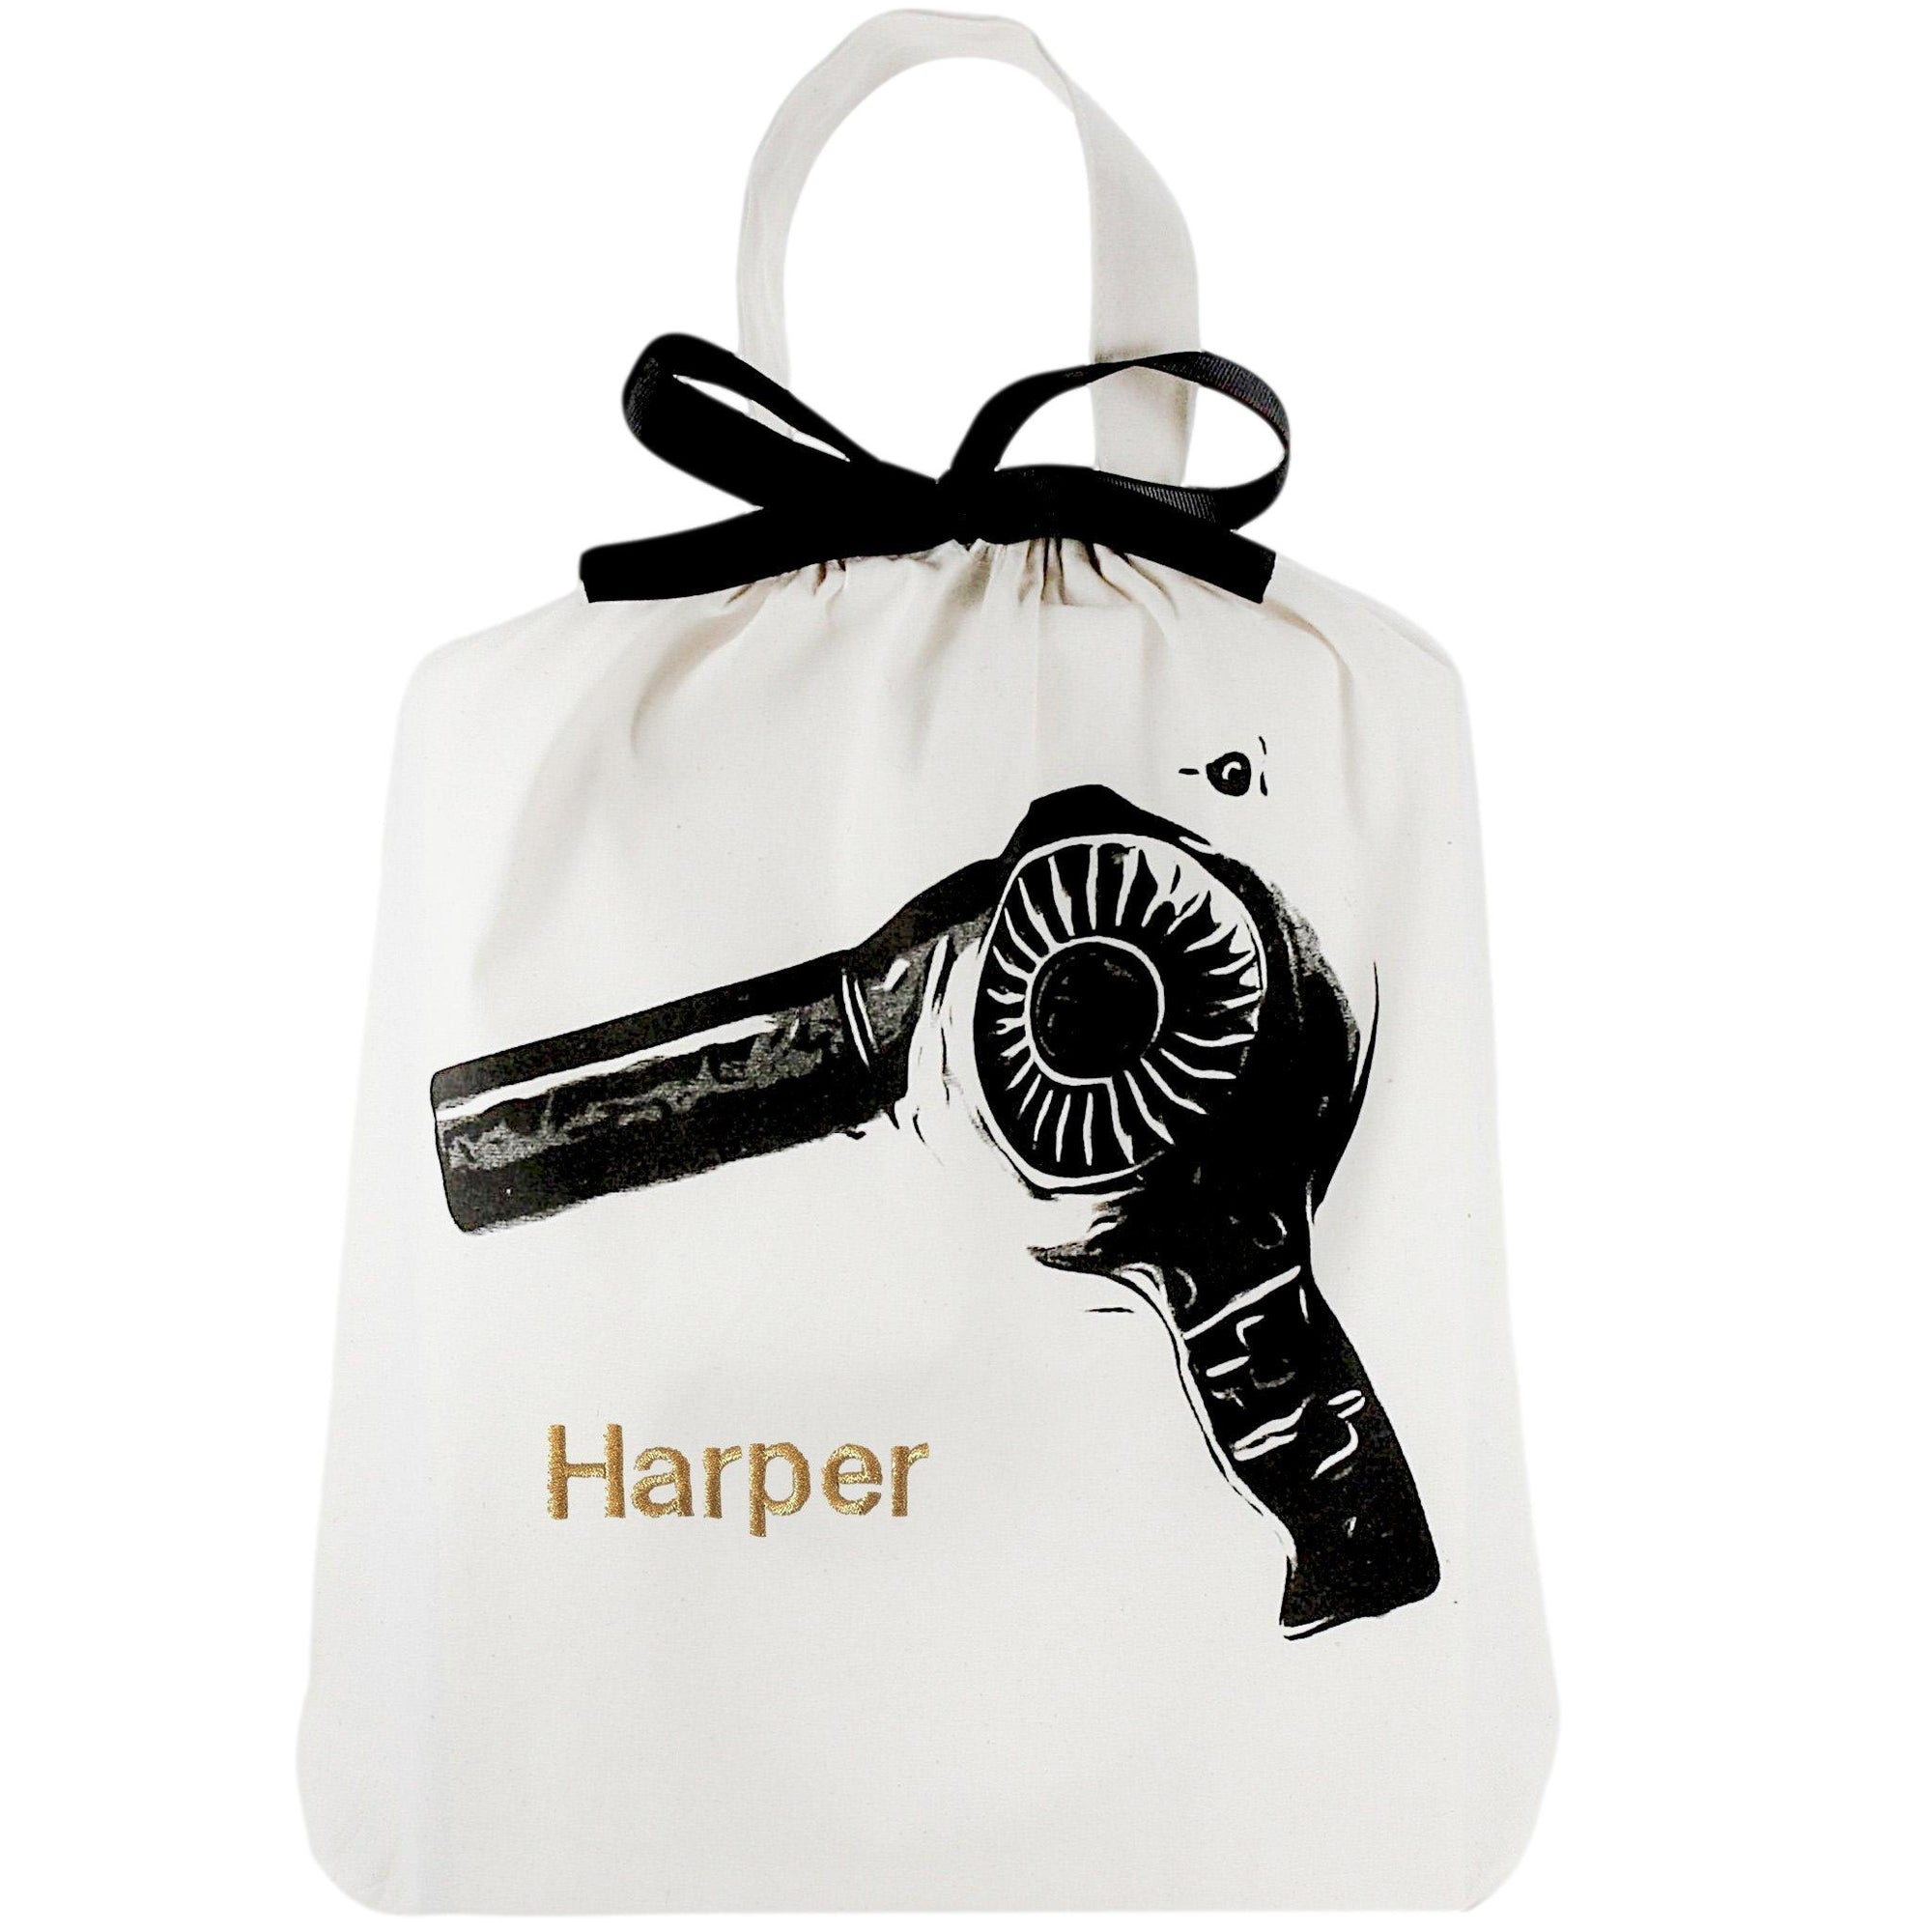 Travel organizing bag for hair dryer.